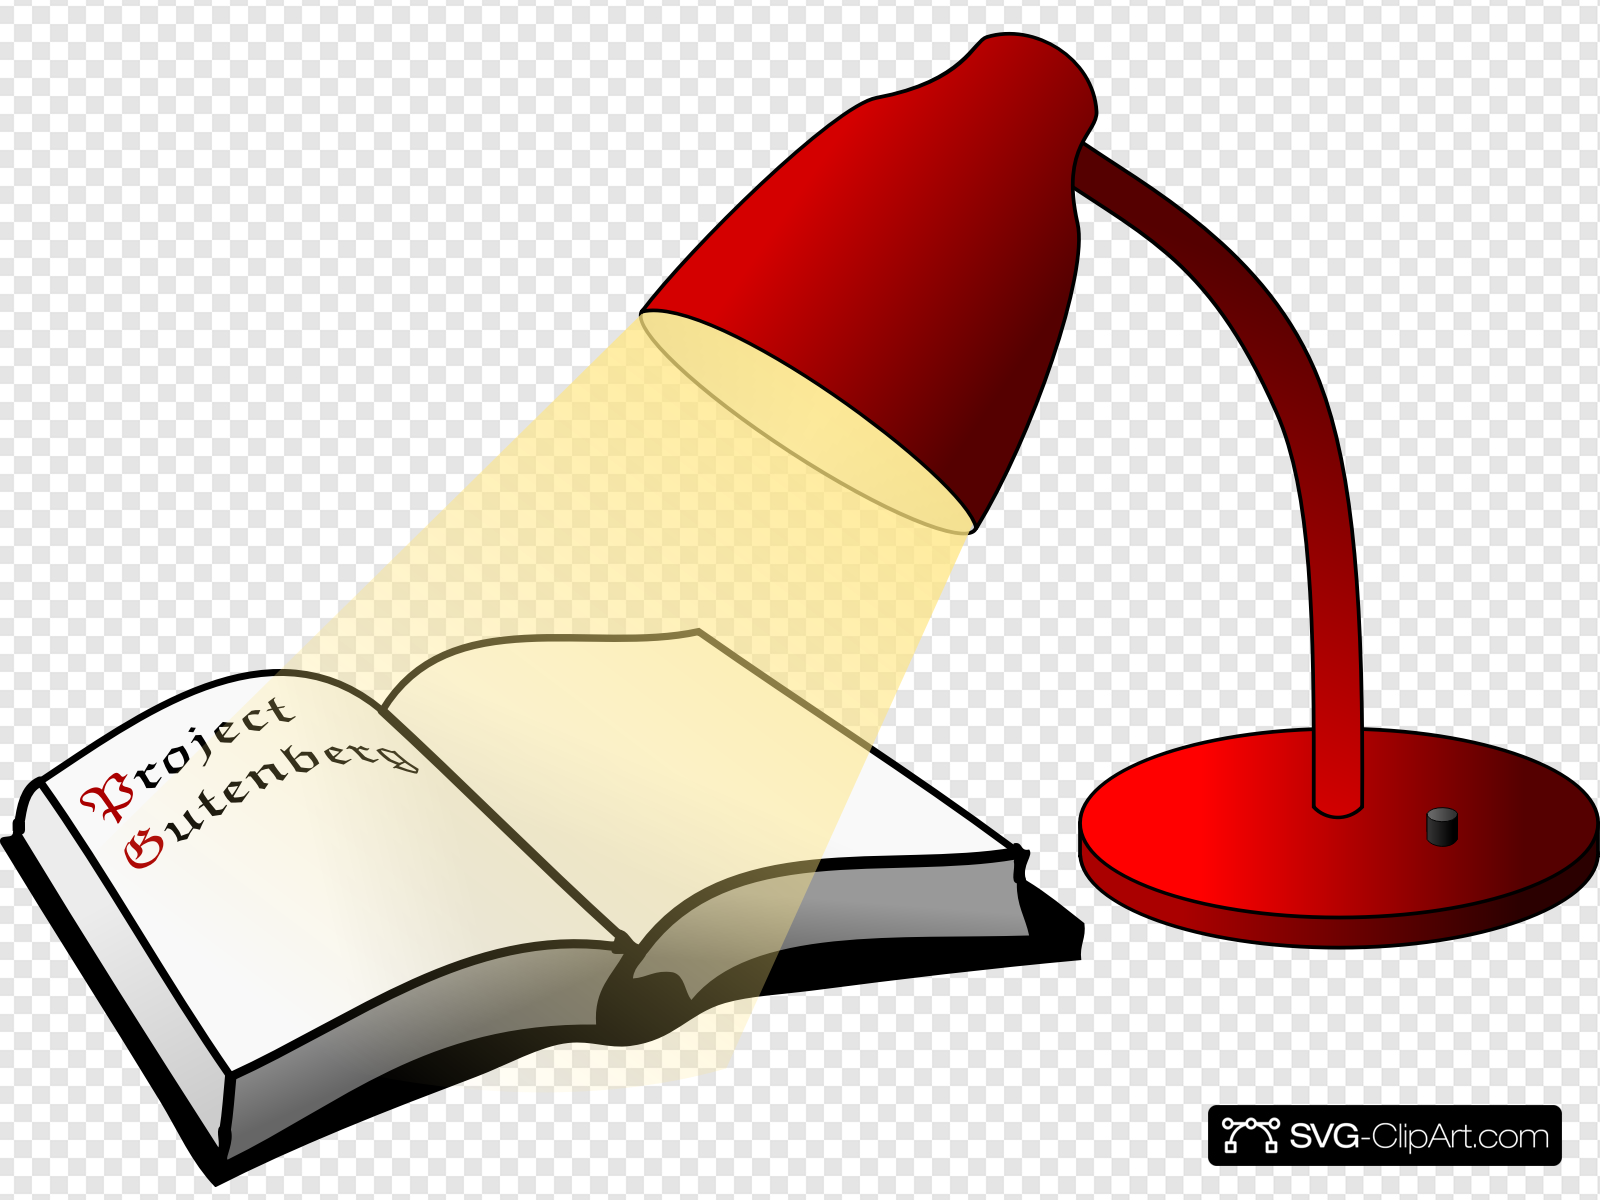 Book And Lamp Clip art, Icon and SVG.